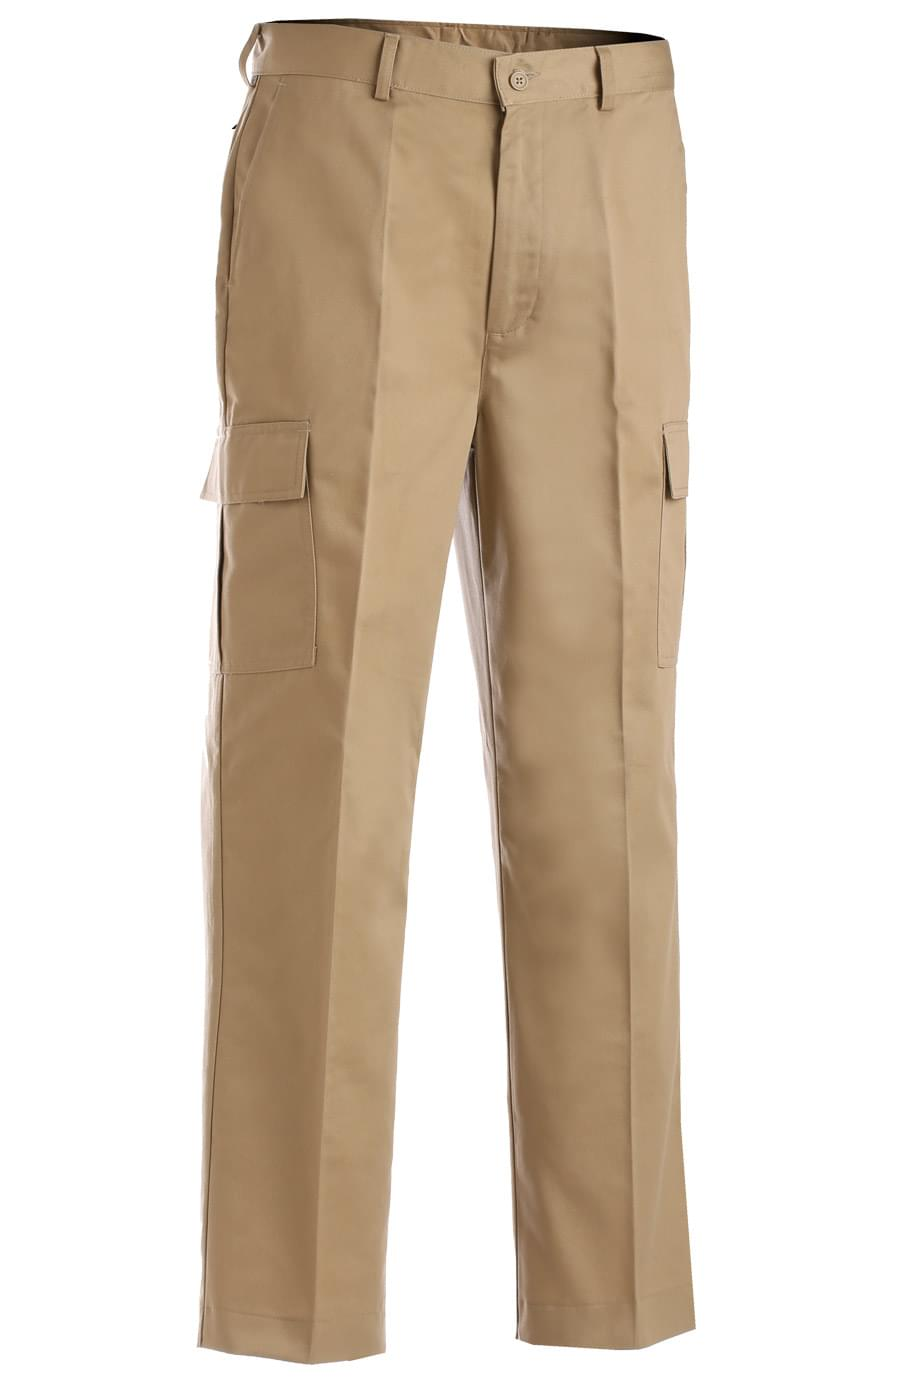 BLENDED CHINO CARGO PANT